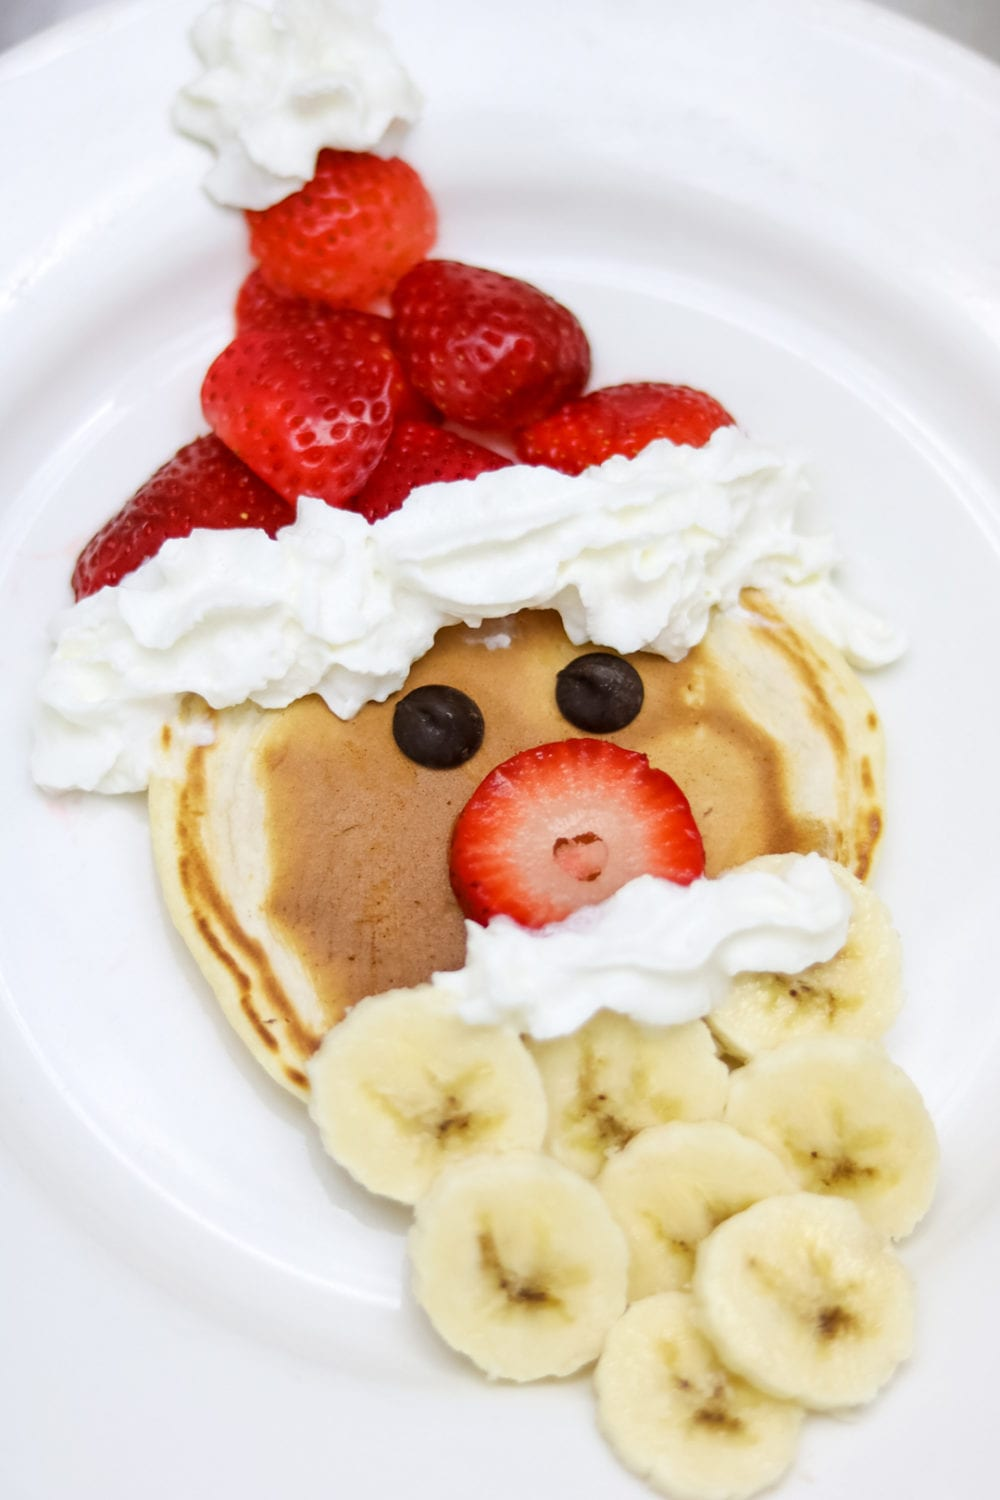 Easy Fruit Santa Pancakes: Santa is made with banana beard and strawberry hat.